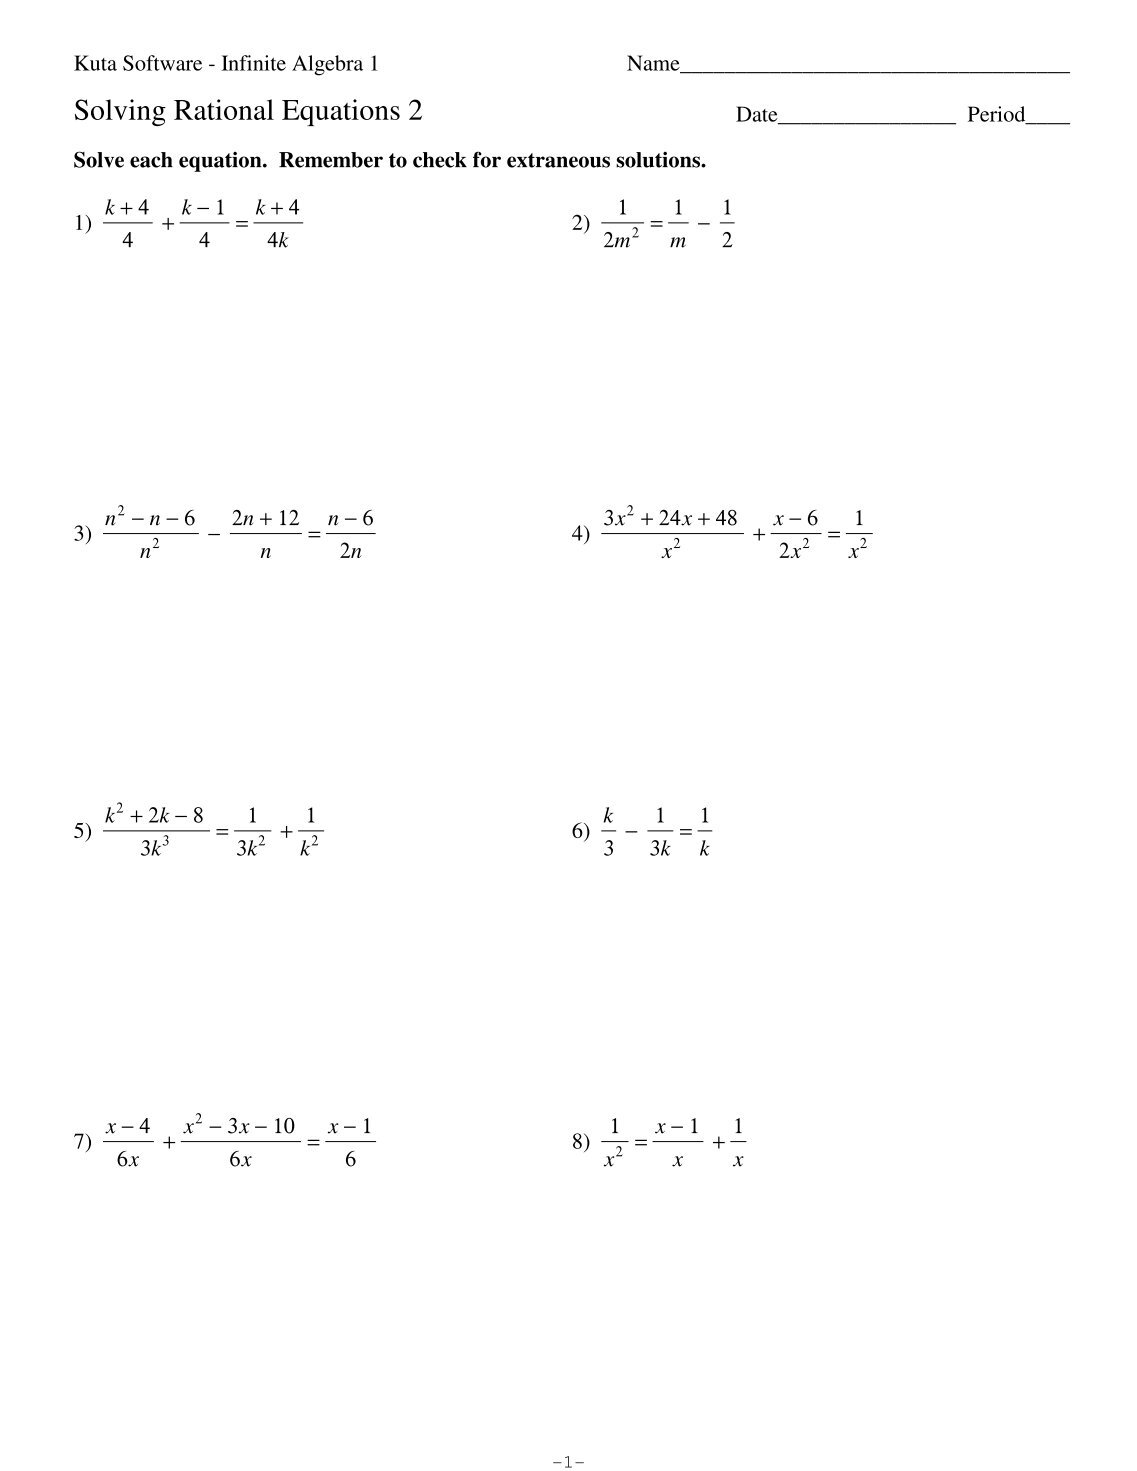 Kuta Software Algebra 1 Solving Quadratic Equations By Factoring – Holt Mcdougal Algebra 1 Worksheet Answers